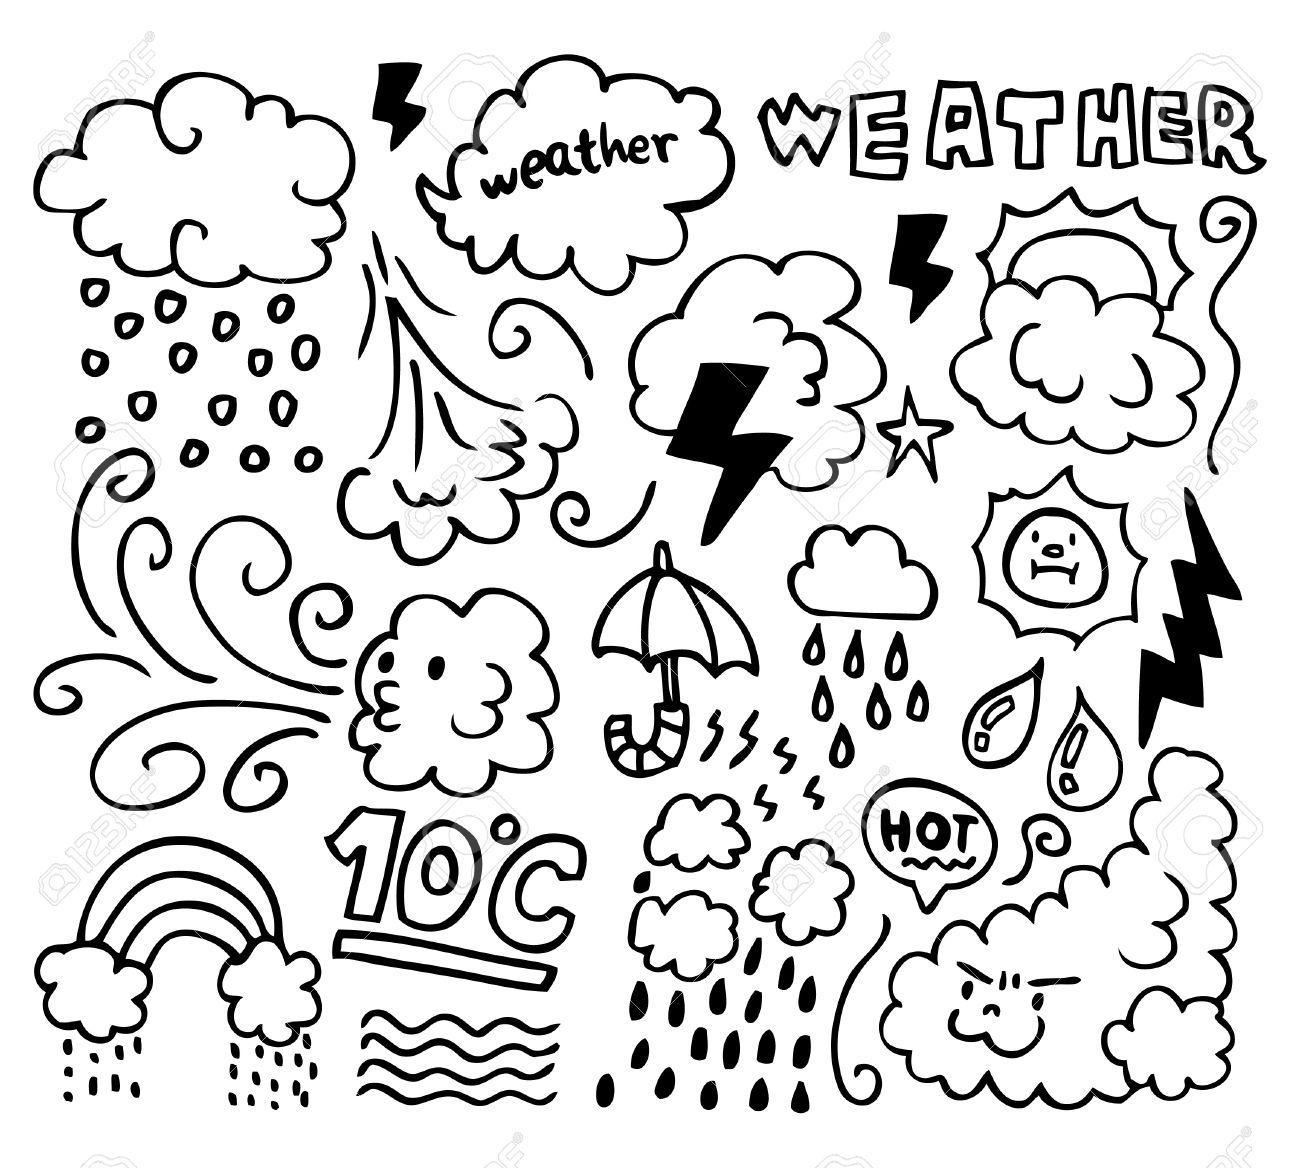 Windy Weather Coloring Pages At Getcolorings